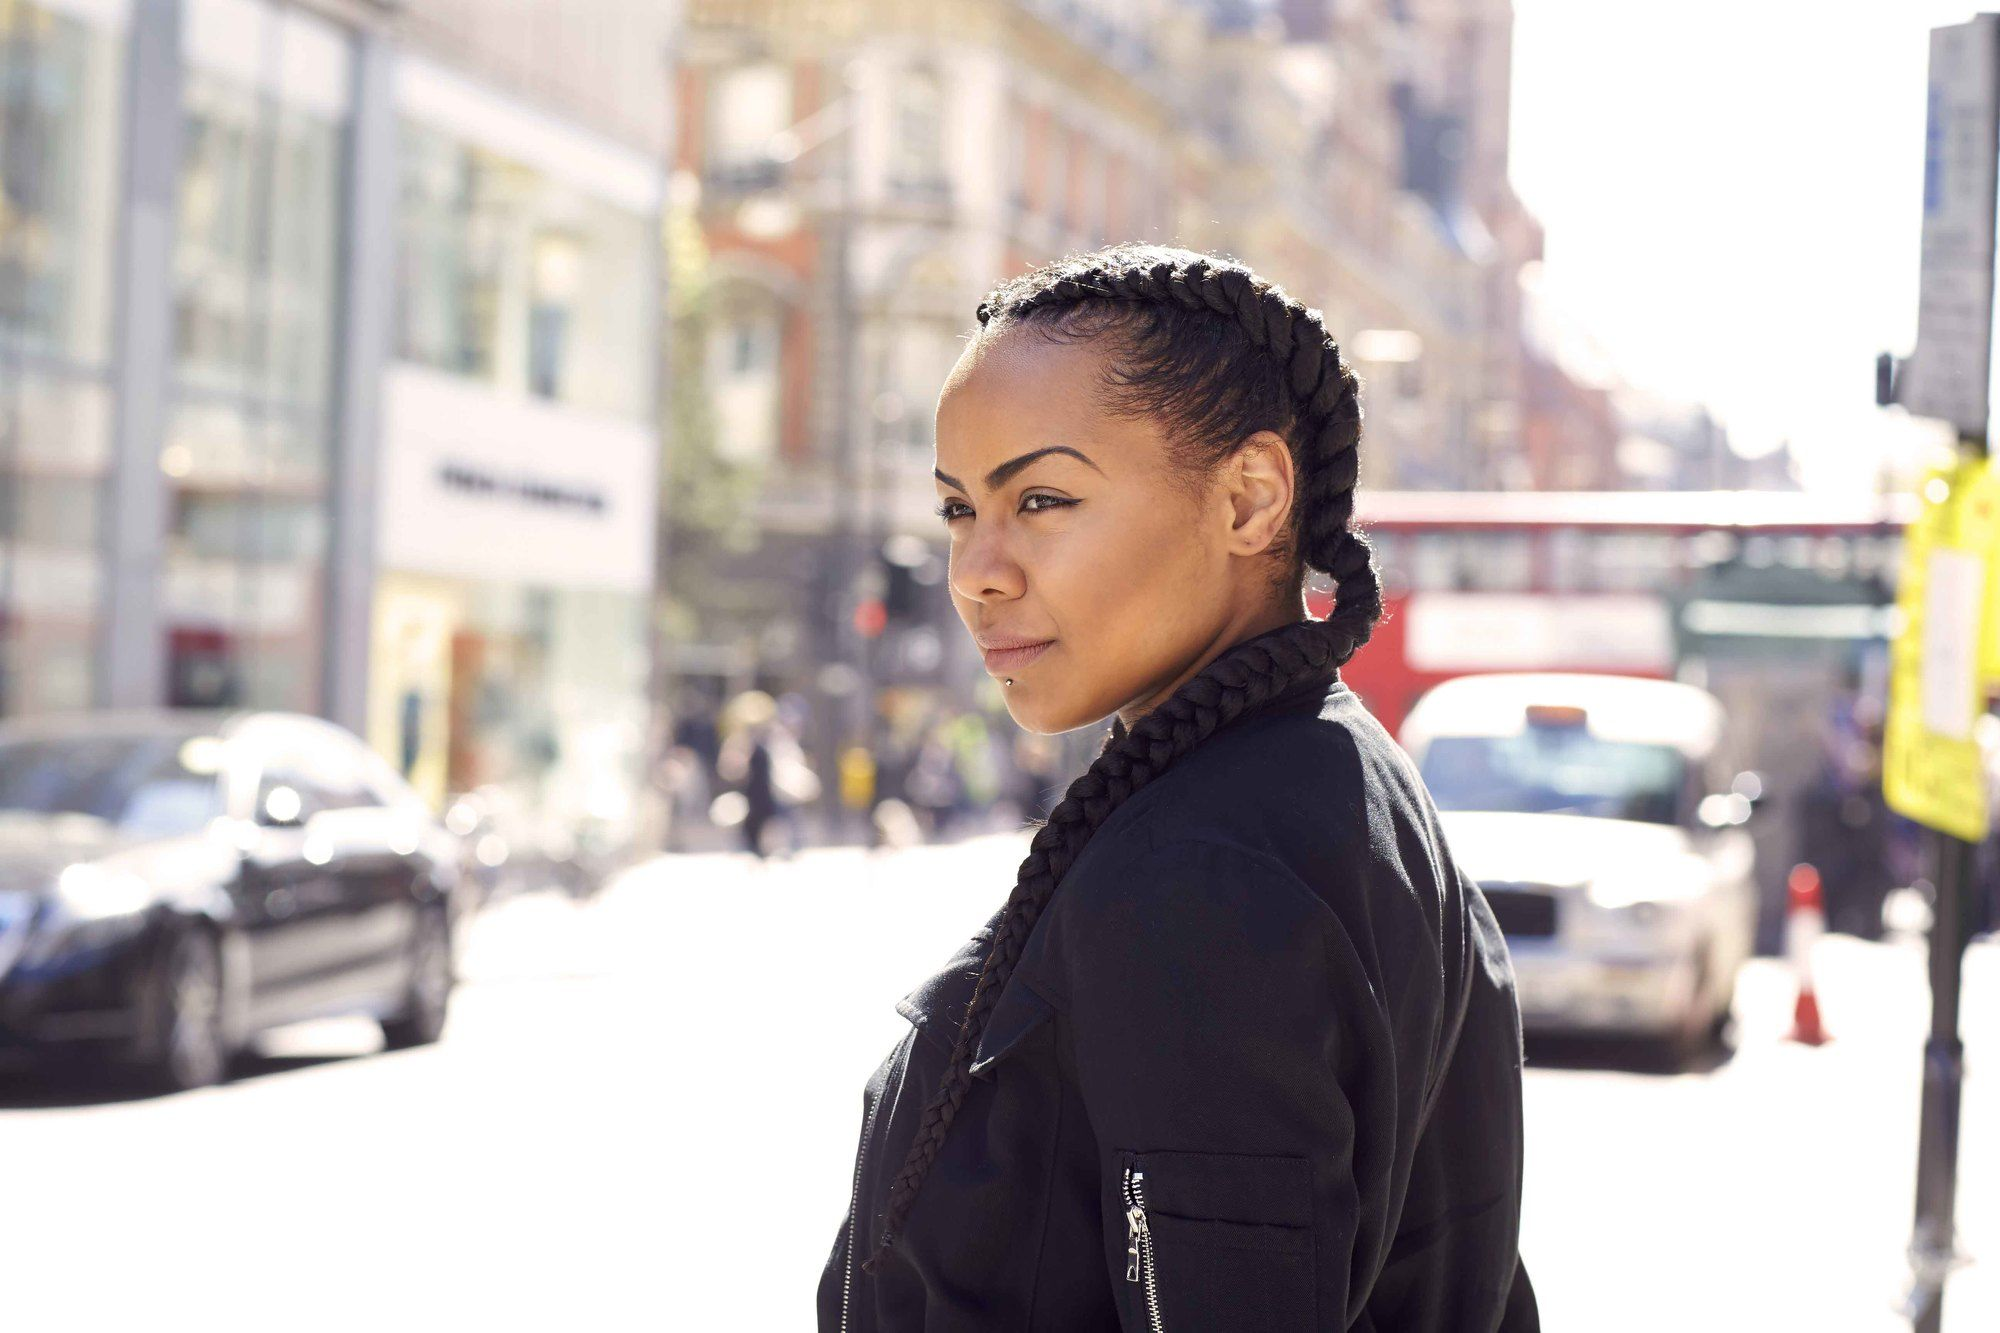 Winter hairstyles for natural hair: Side view of a woman with dark brown double boxer braids, wearing a black bomber jacket and standing in the street